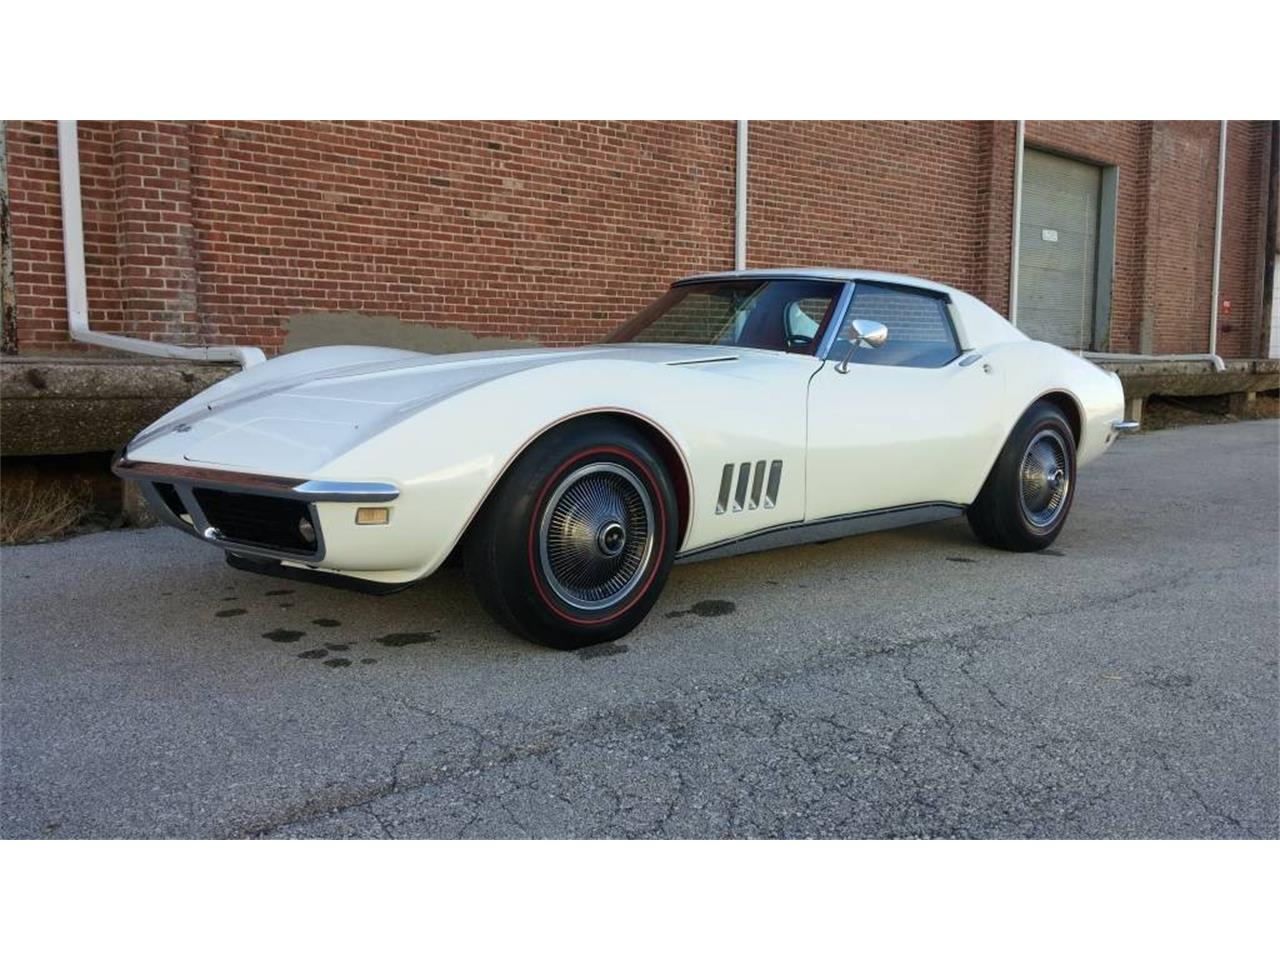 Large Picture of Classic 1968 Corvette located in N. Kansas City Missouri Auction Vehicle Offered by Vintage Vettes, LLC - MO22